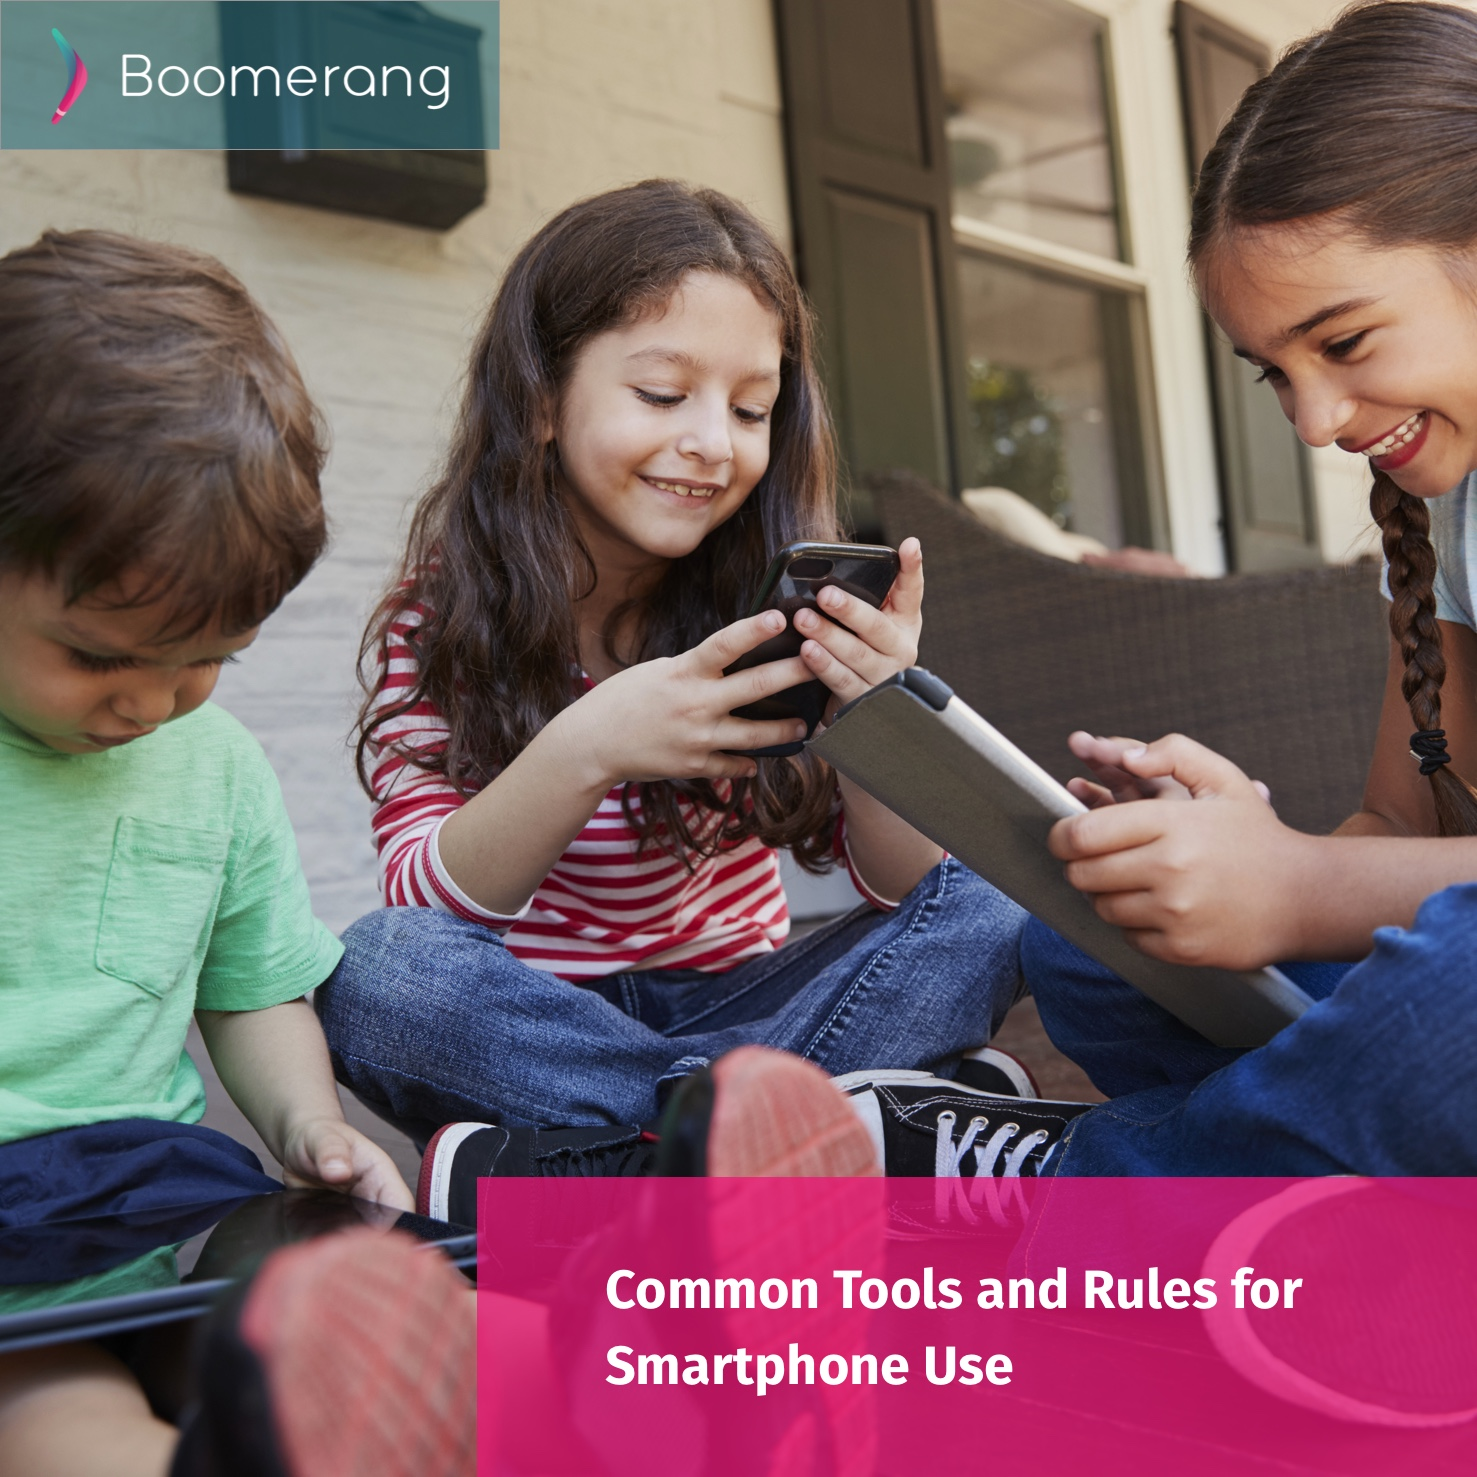 Common Tools and Rules for Smartphone Use